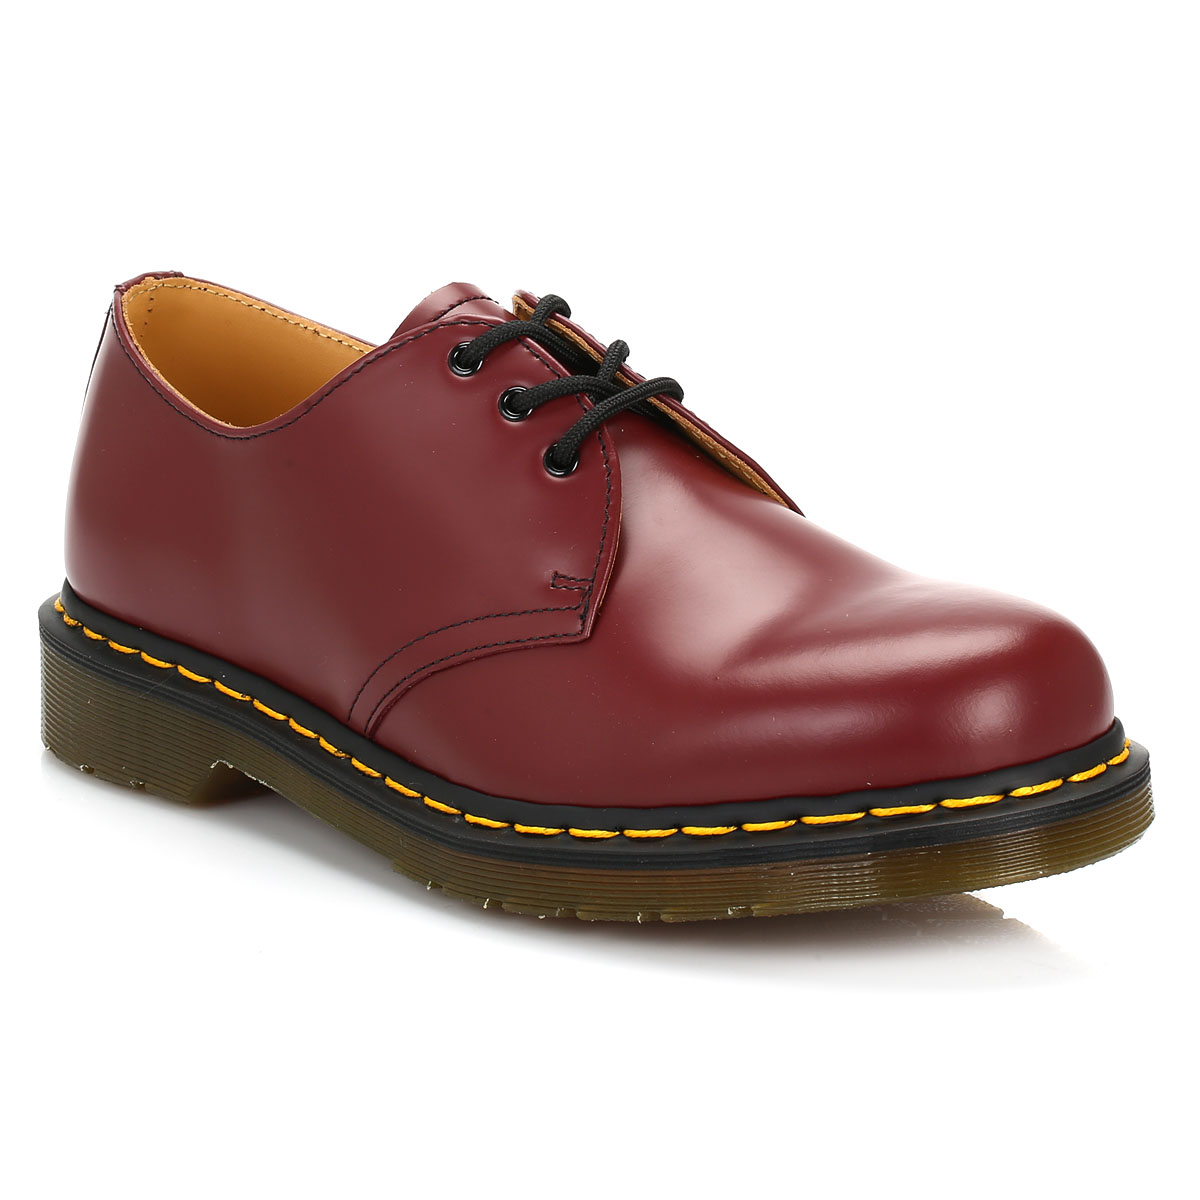 dr martens unisex cherry red casual shoes mens womens. Black Bedroom Furniture Sets. Home Design Ideas